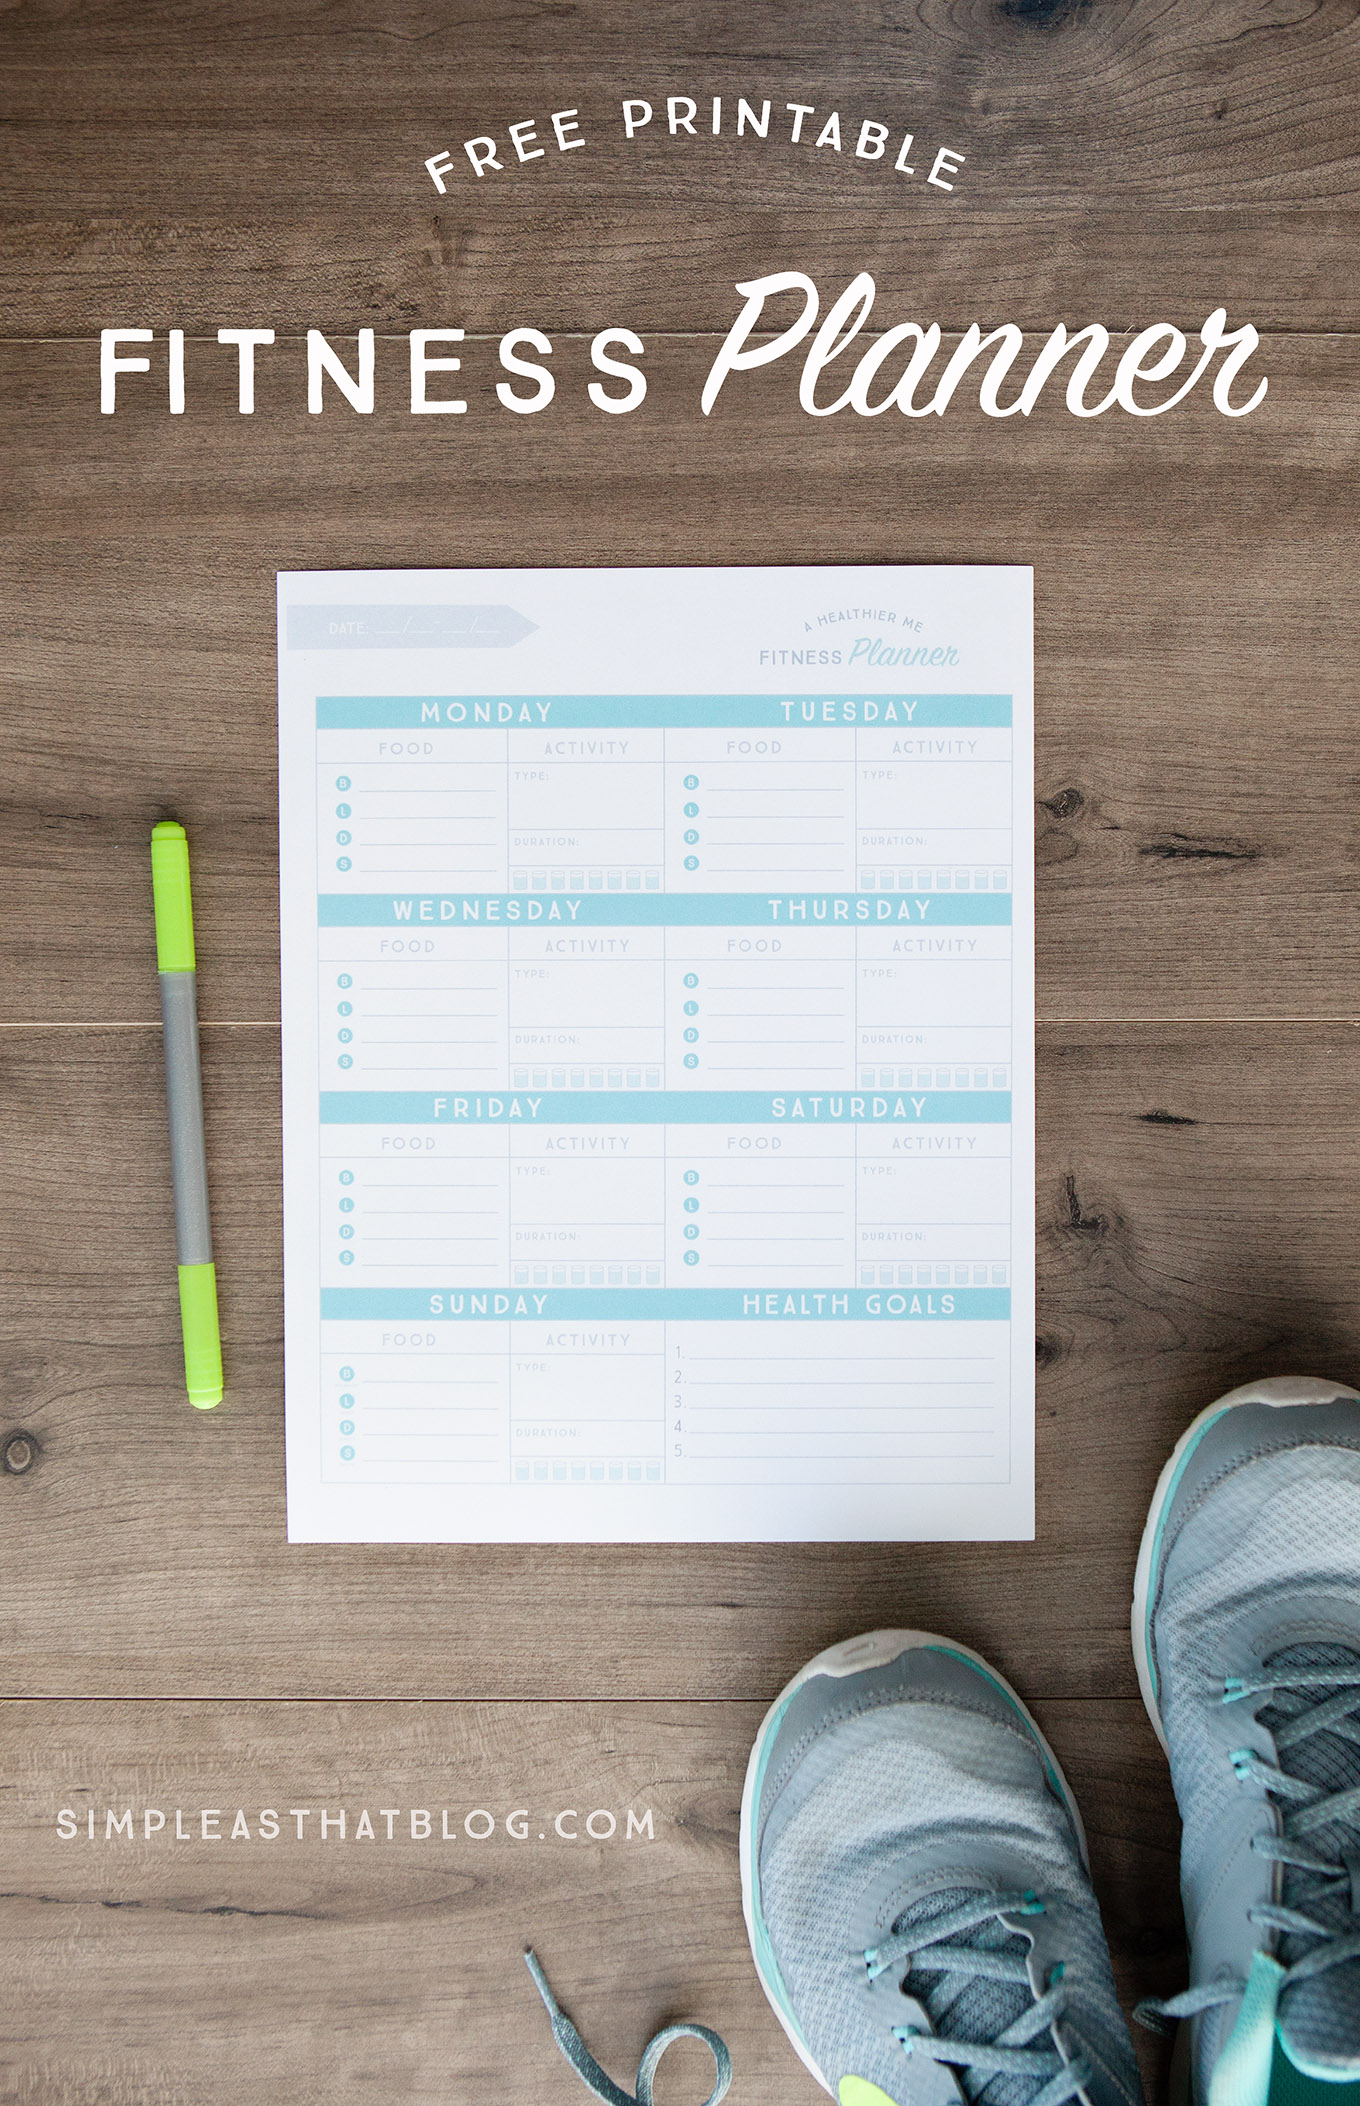 graphic regarding Fitness Planner Printable called Cost-free Printable Health and fitness Planner